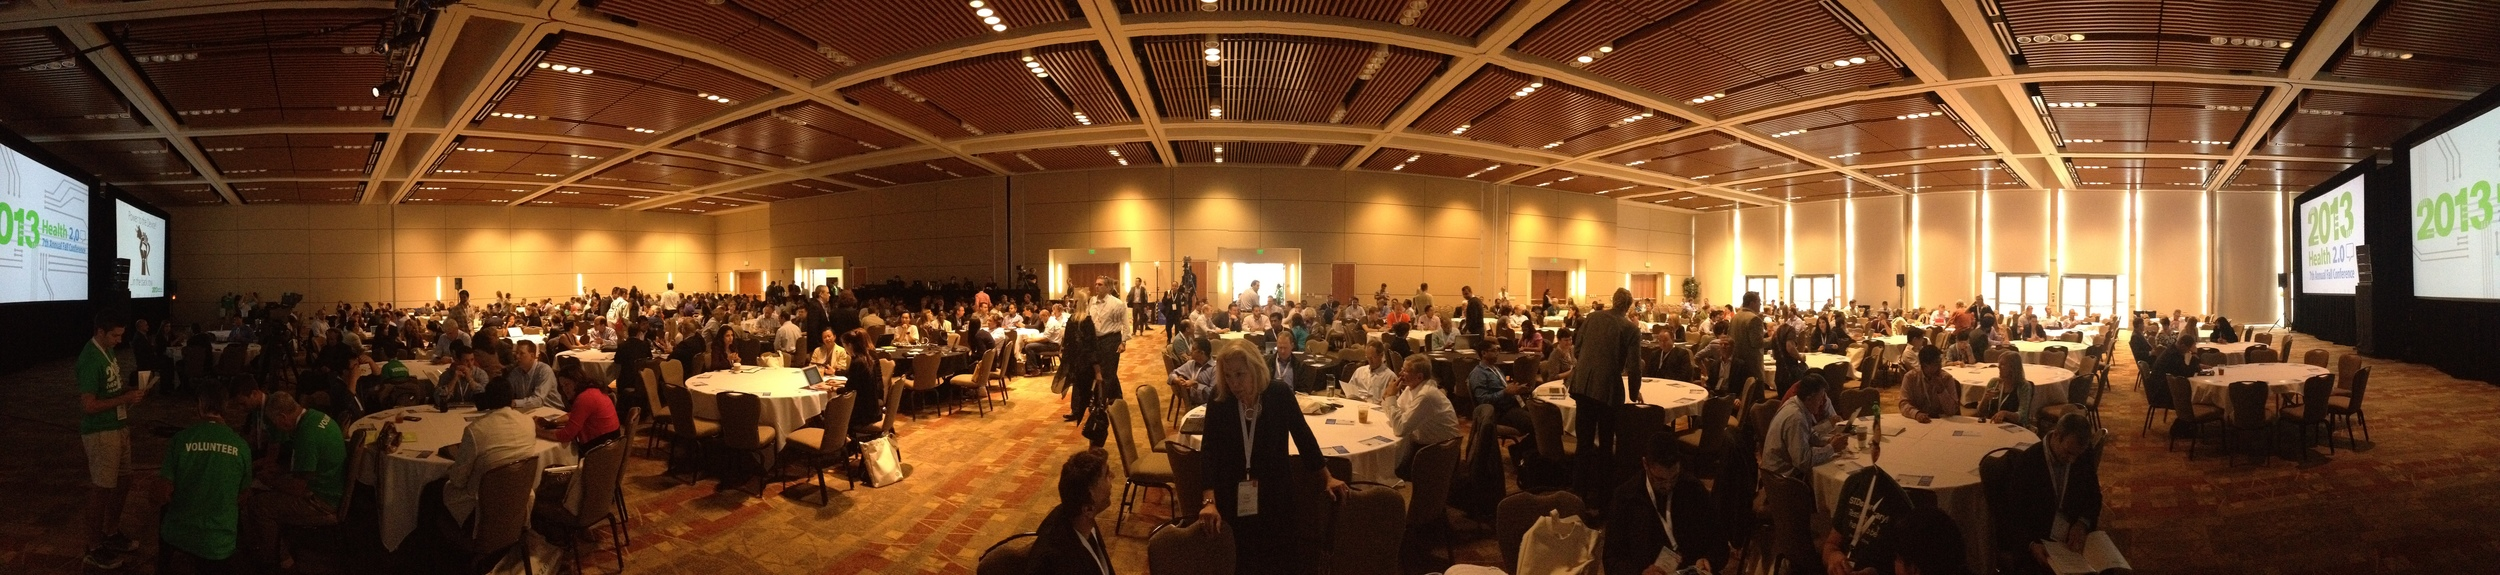 Panoramic picture of the attendees in the Missing City Ballroom